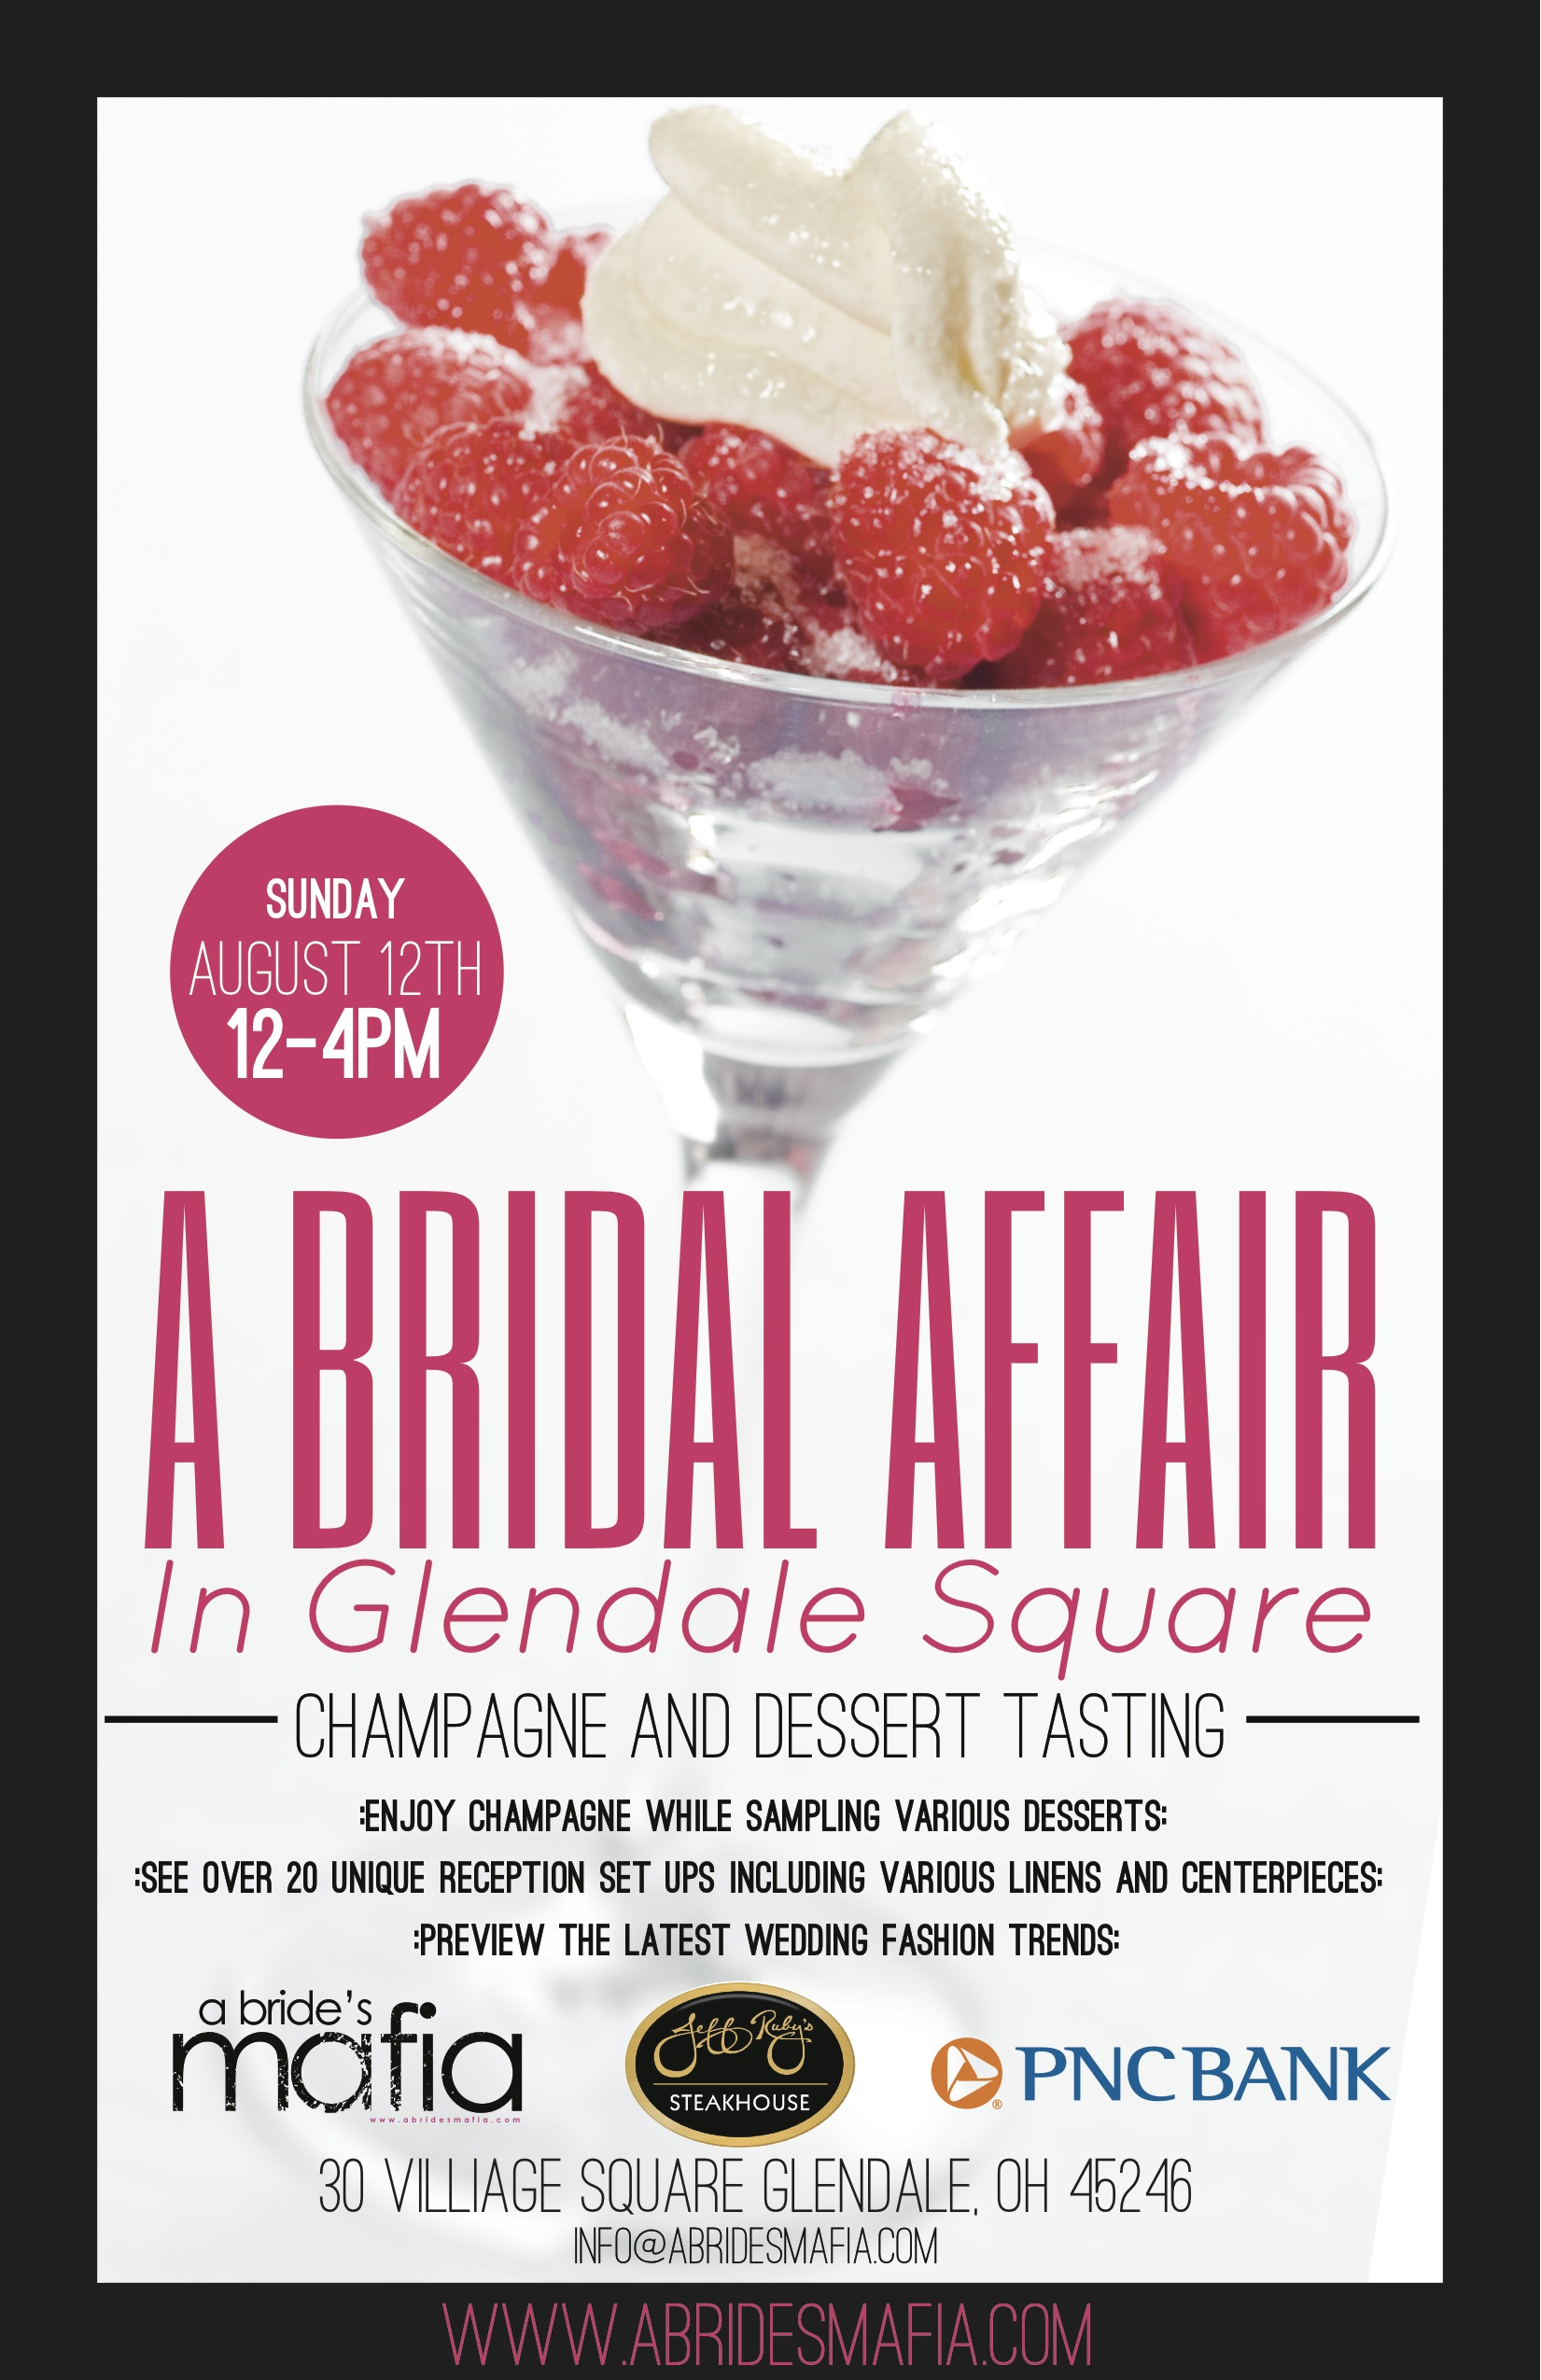 A Bridal Affair in Glendale Square